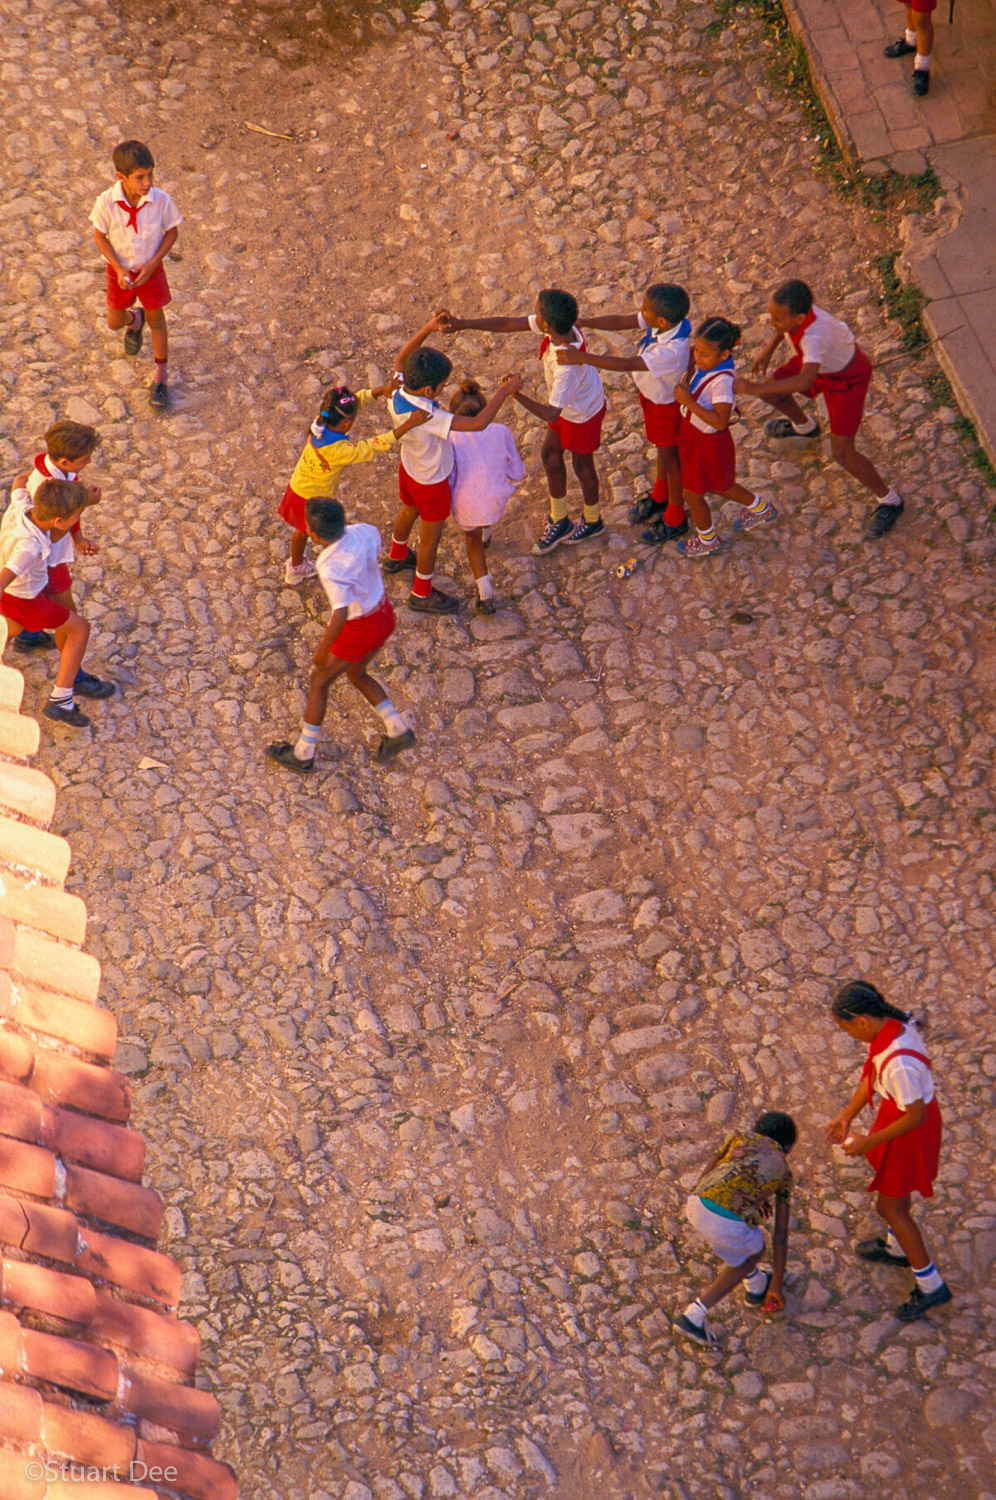 Schoolchildren, From Above, Trinidad, Cuba